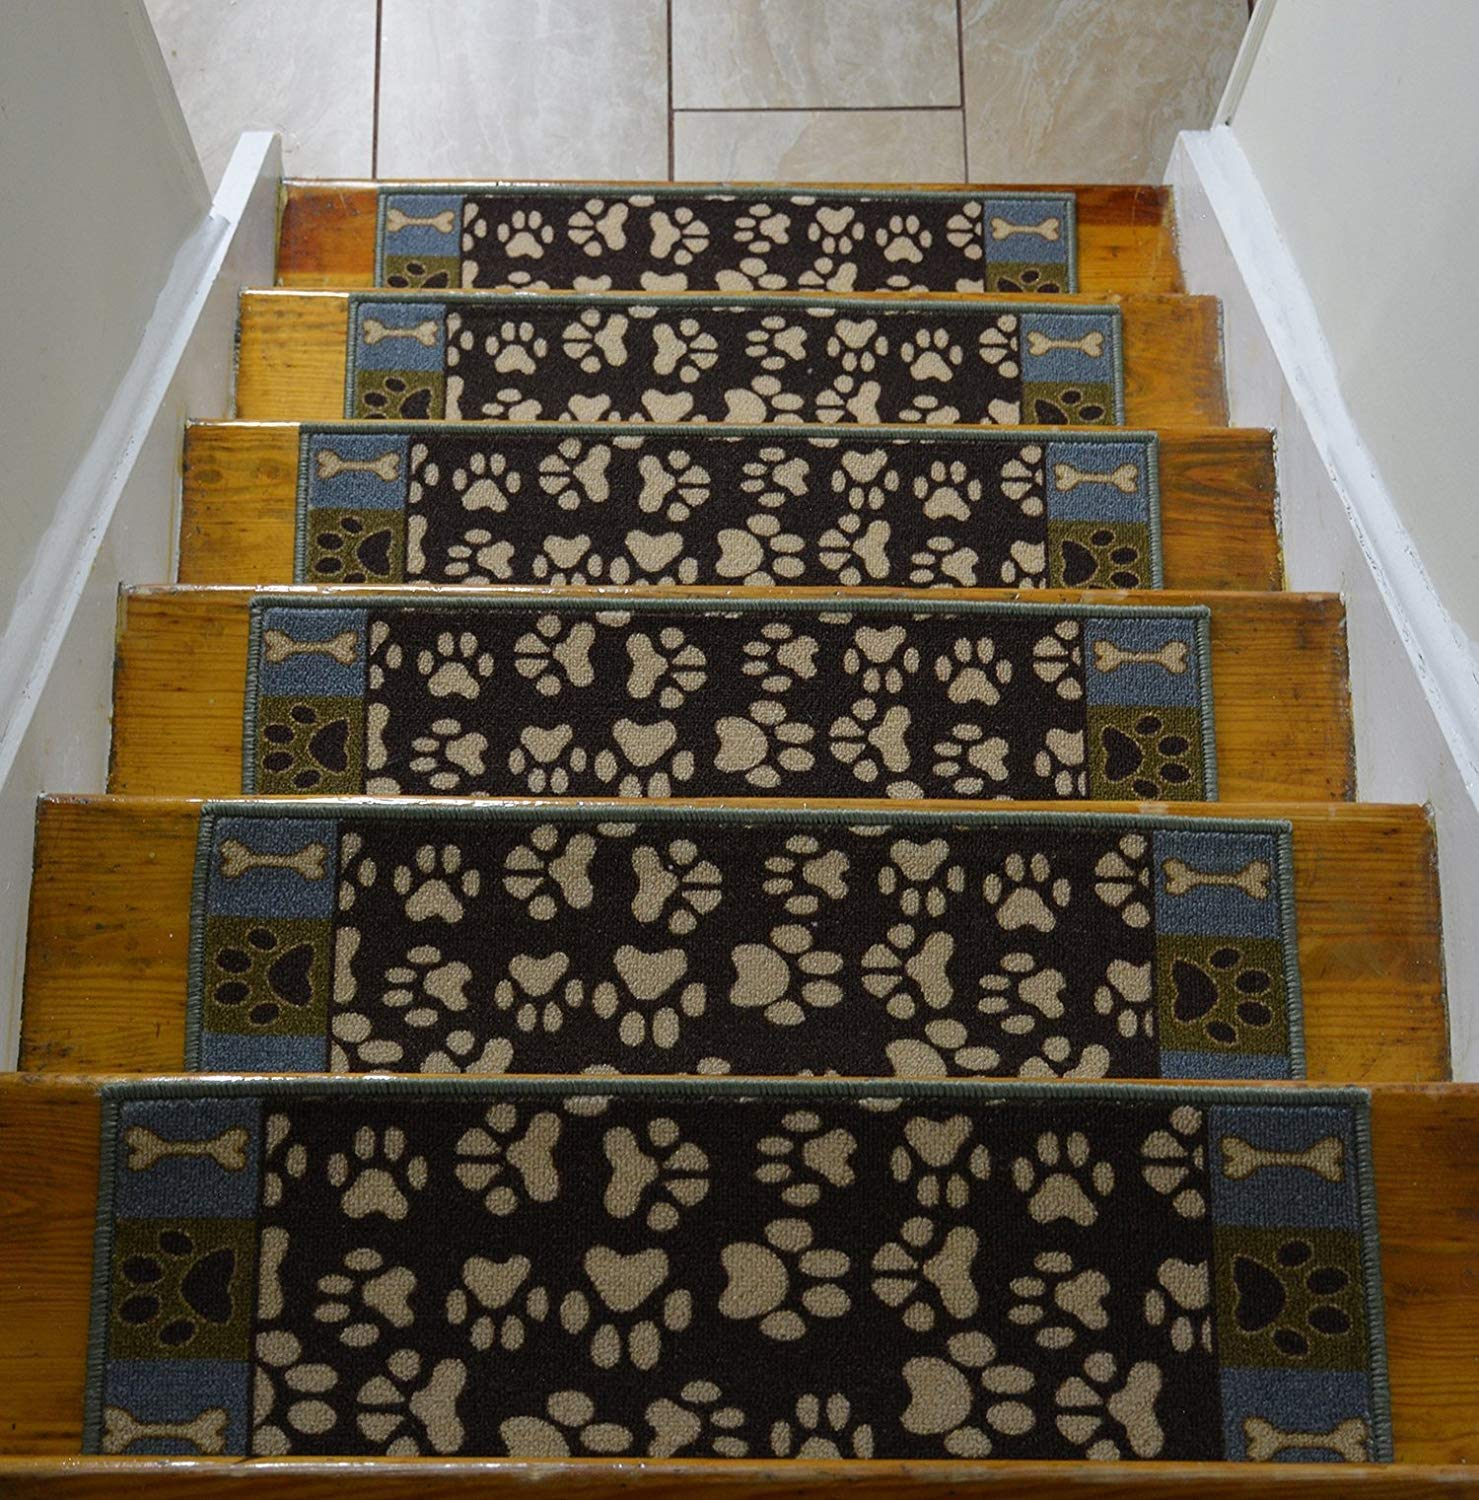 Get Quotations Stair Treads Skid Slip Resistant Backing Indoor Carpet Pet Paw Design 8 ½ Inch